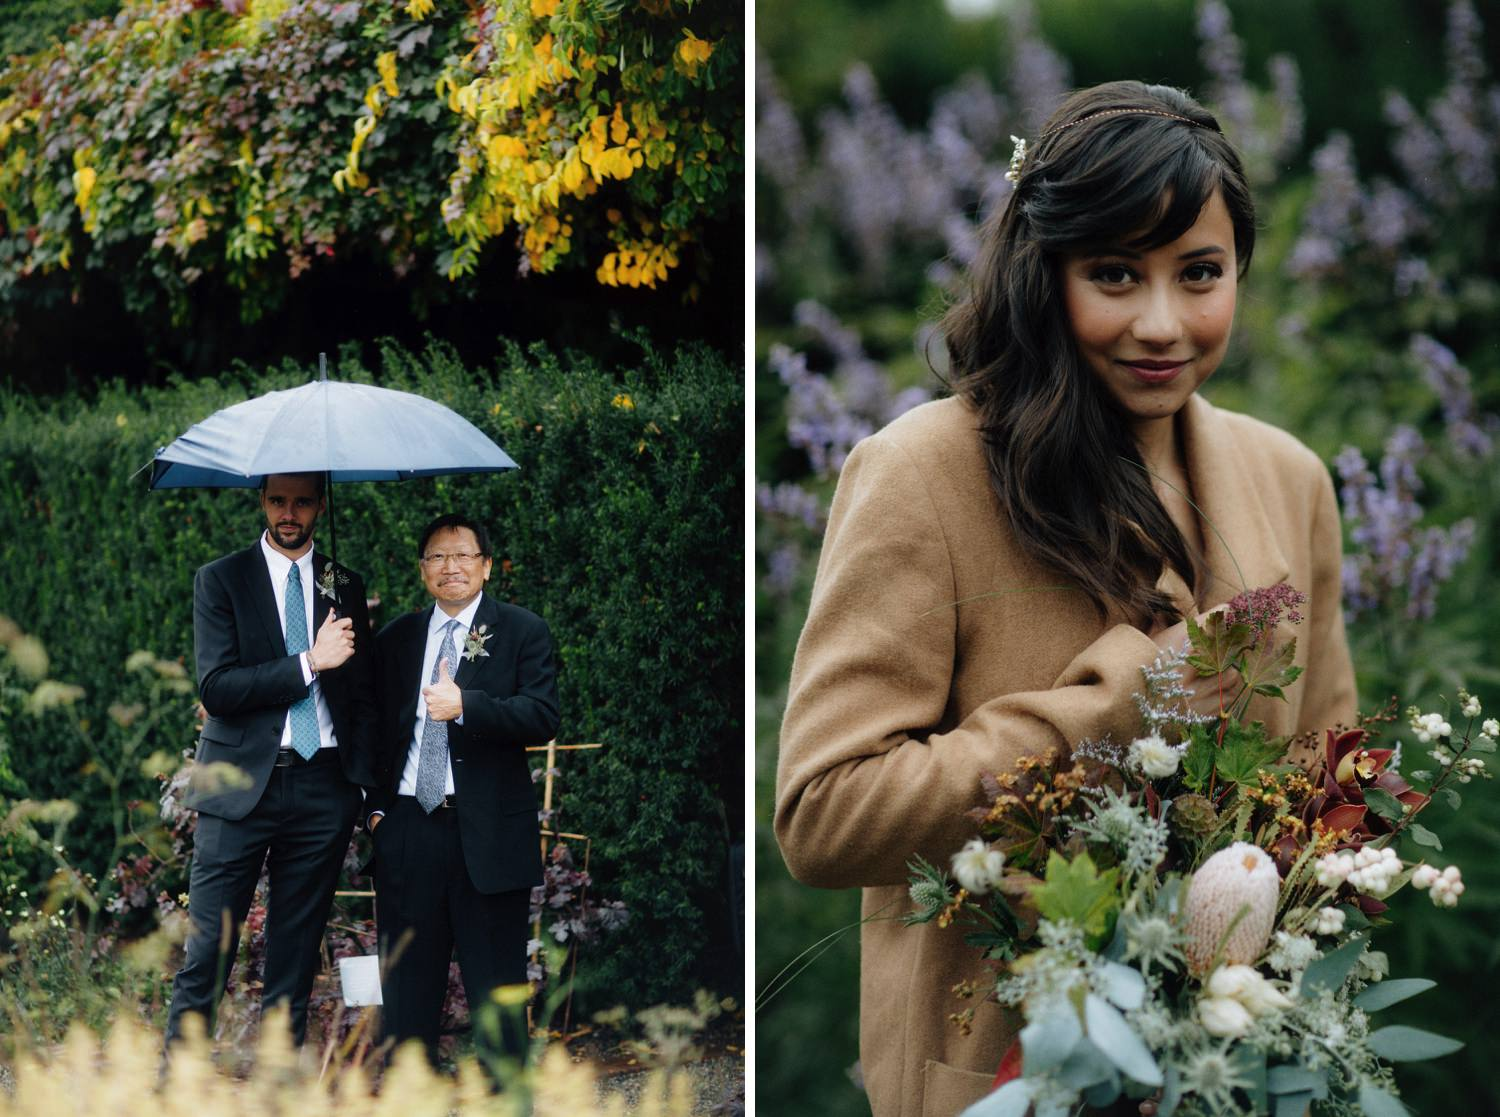 fall colours at ubc botanical garden in late september, bride with natural bouquet